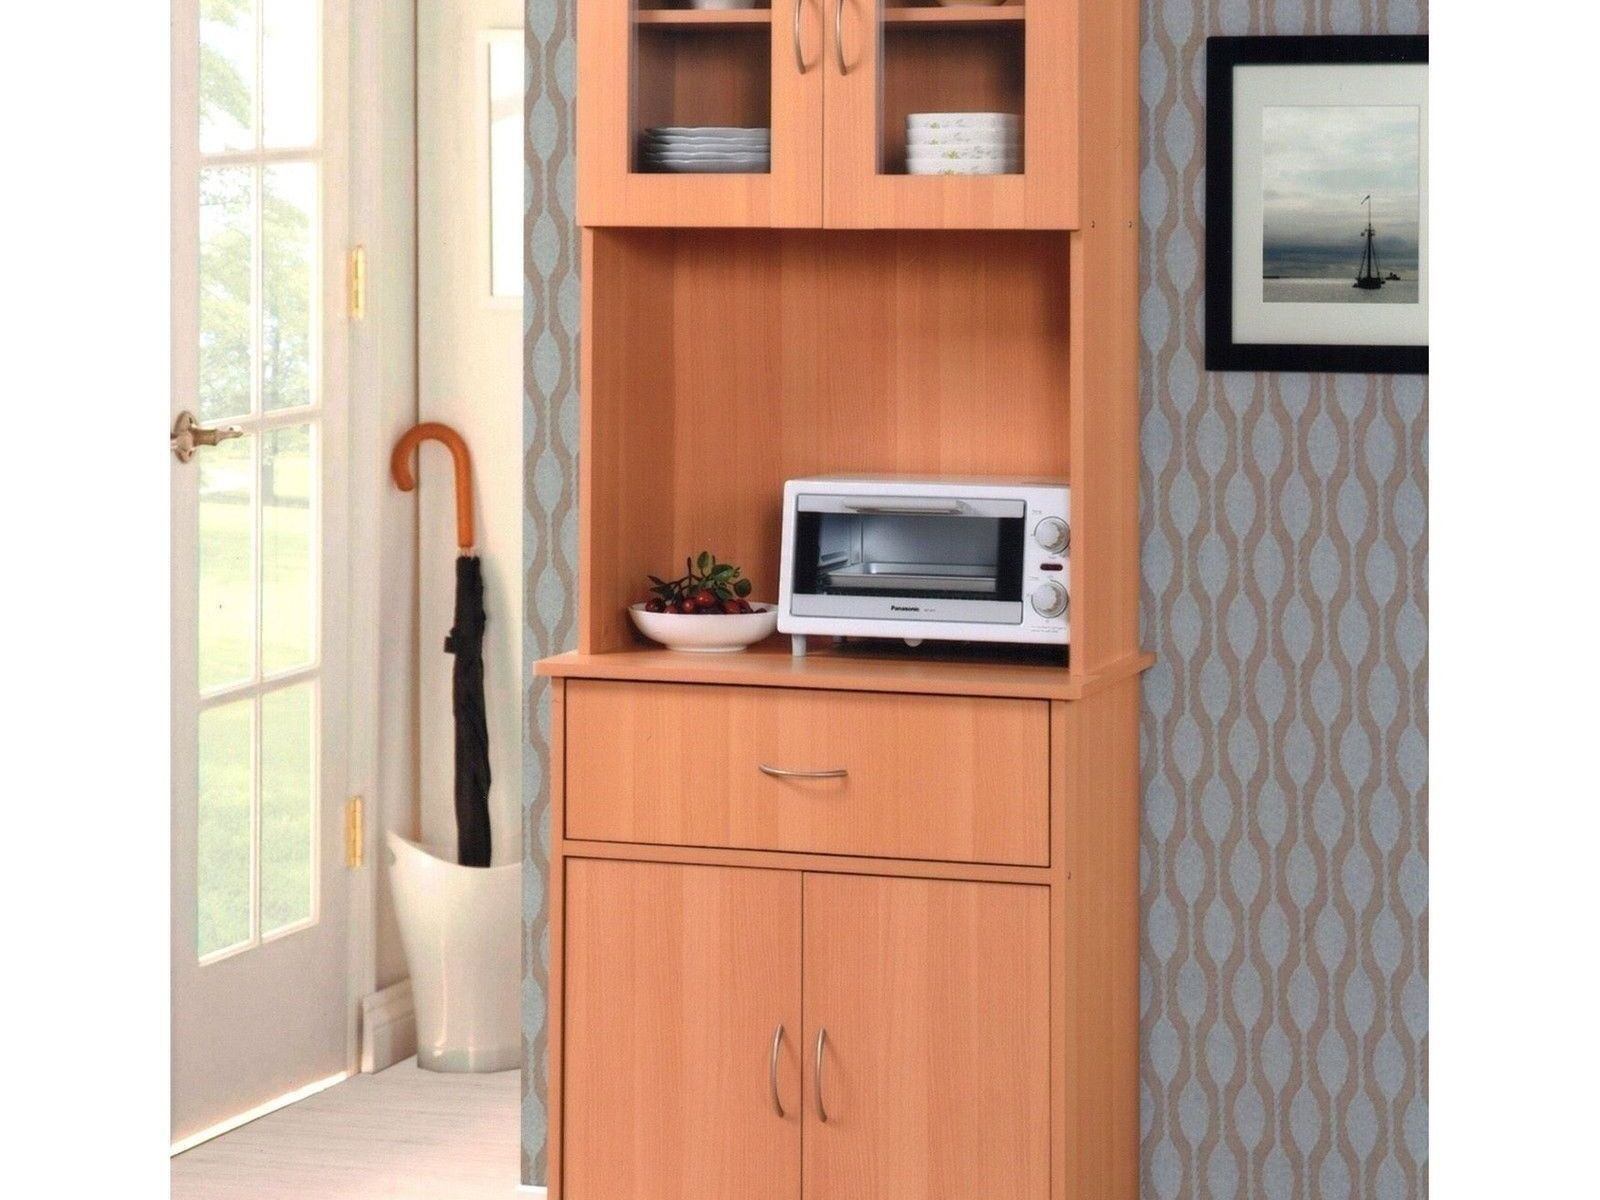 New Tall Kitchen Microwave Stand Beech Utility Cabinet Storage Shelves Cupboard The Clearance Castle Llc